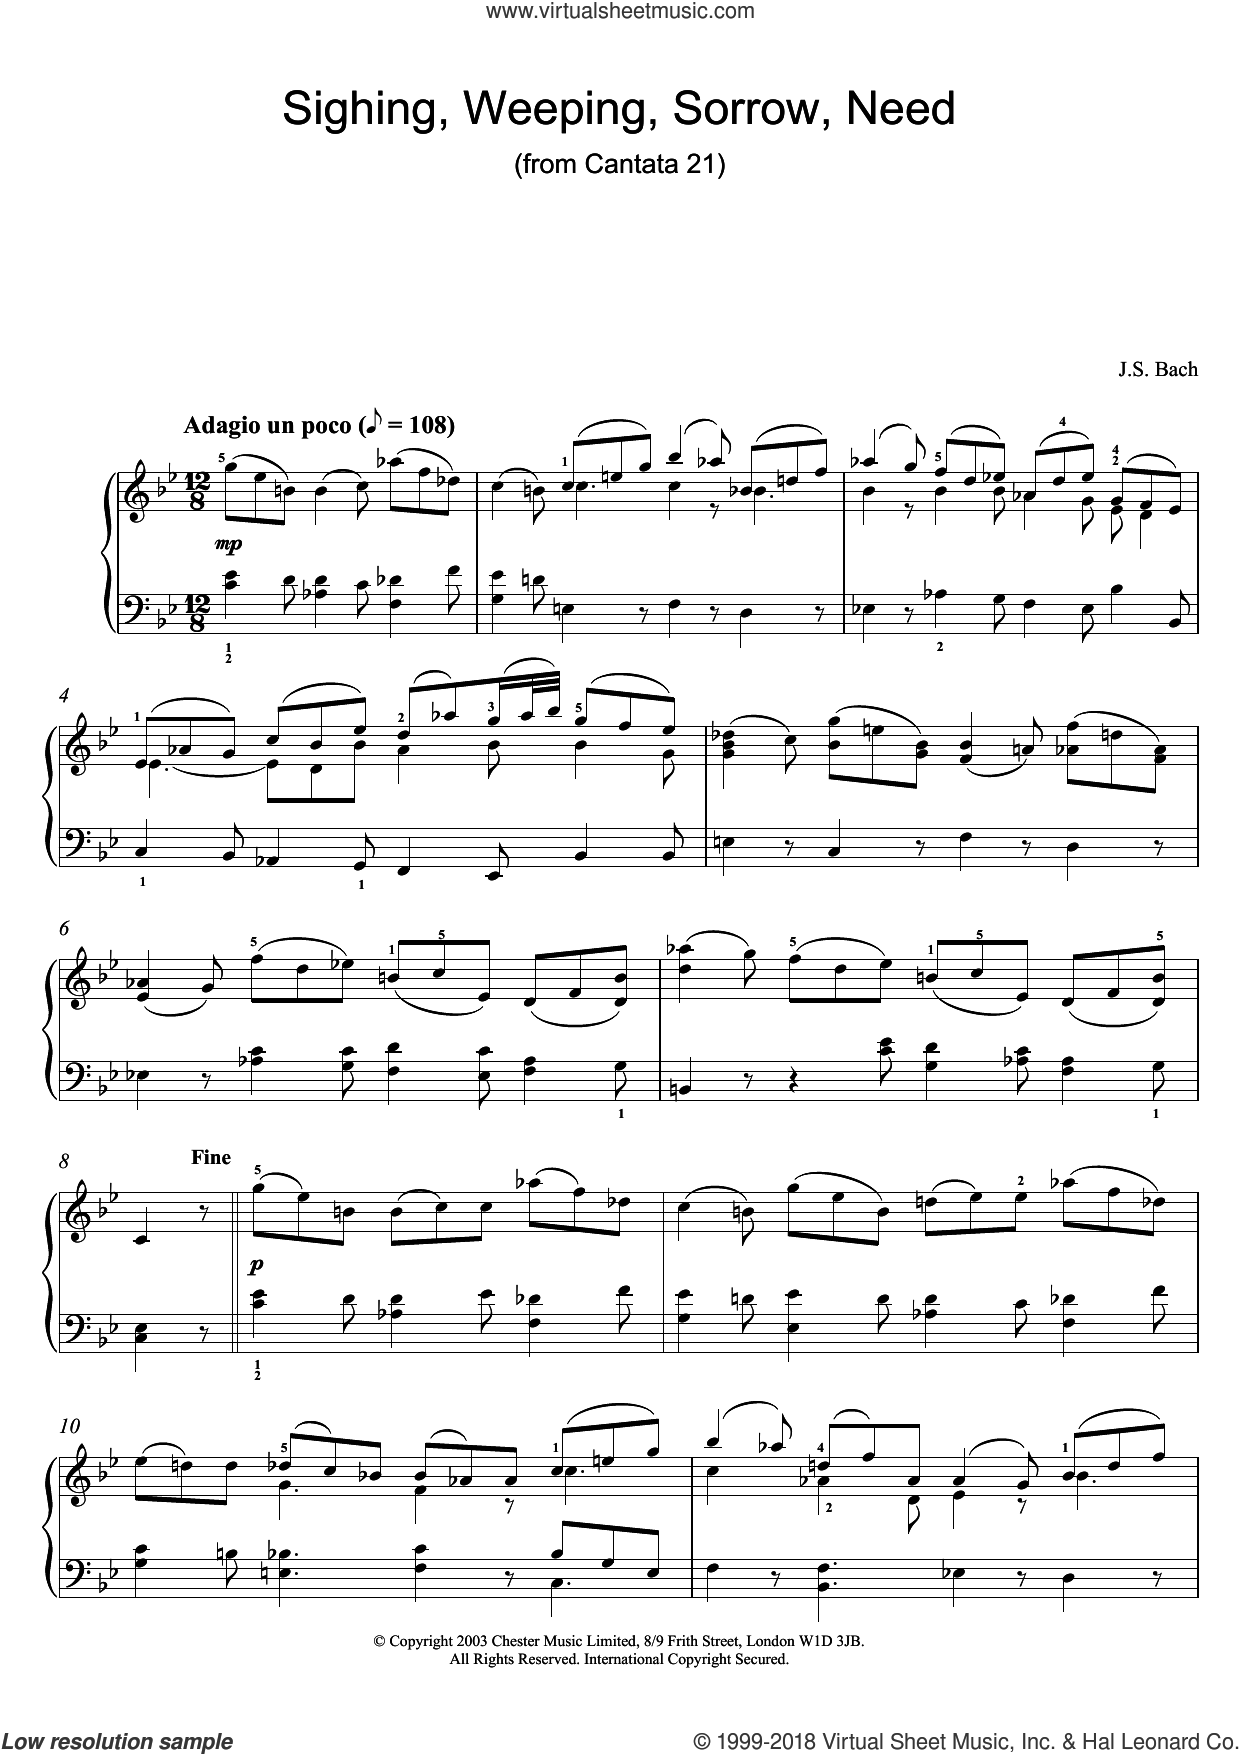 Sighing, Weeping, Sorrow, Need (from Cantata 21) sheet music for piano solo by Johann Sebastian Bach, classical score, intermediate piano. Score Image Preview.